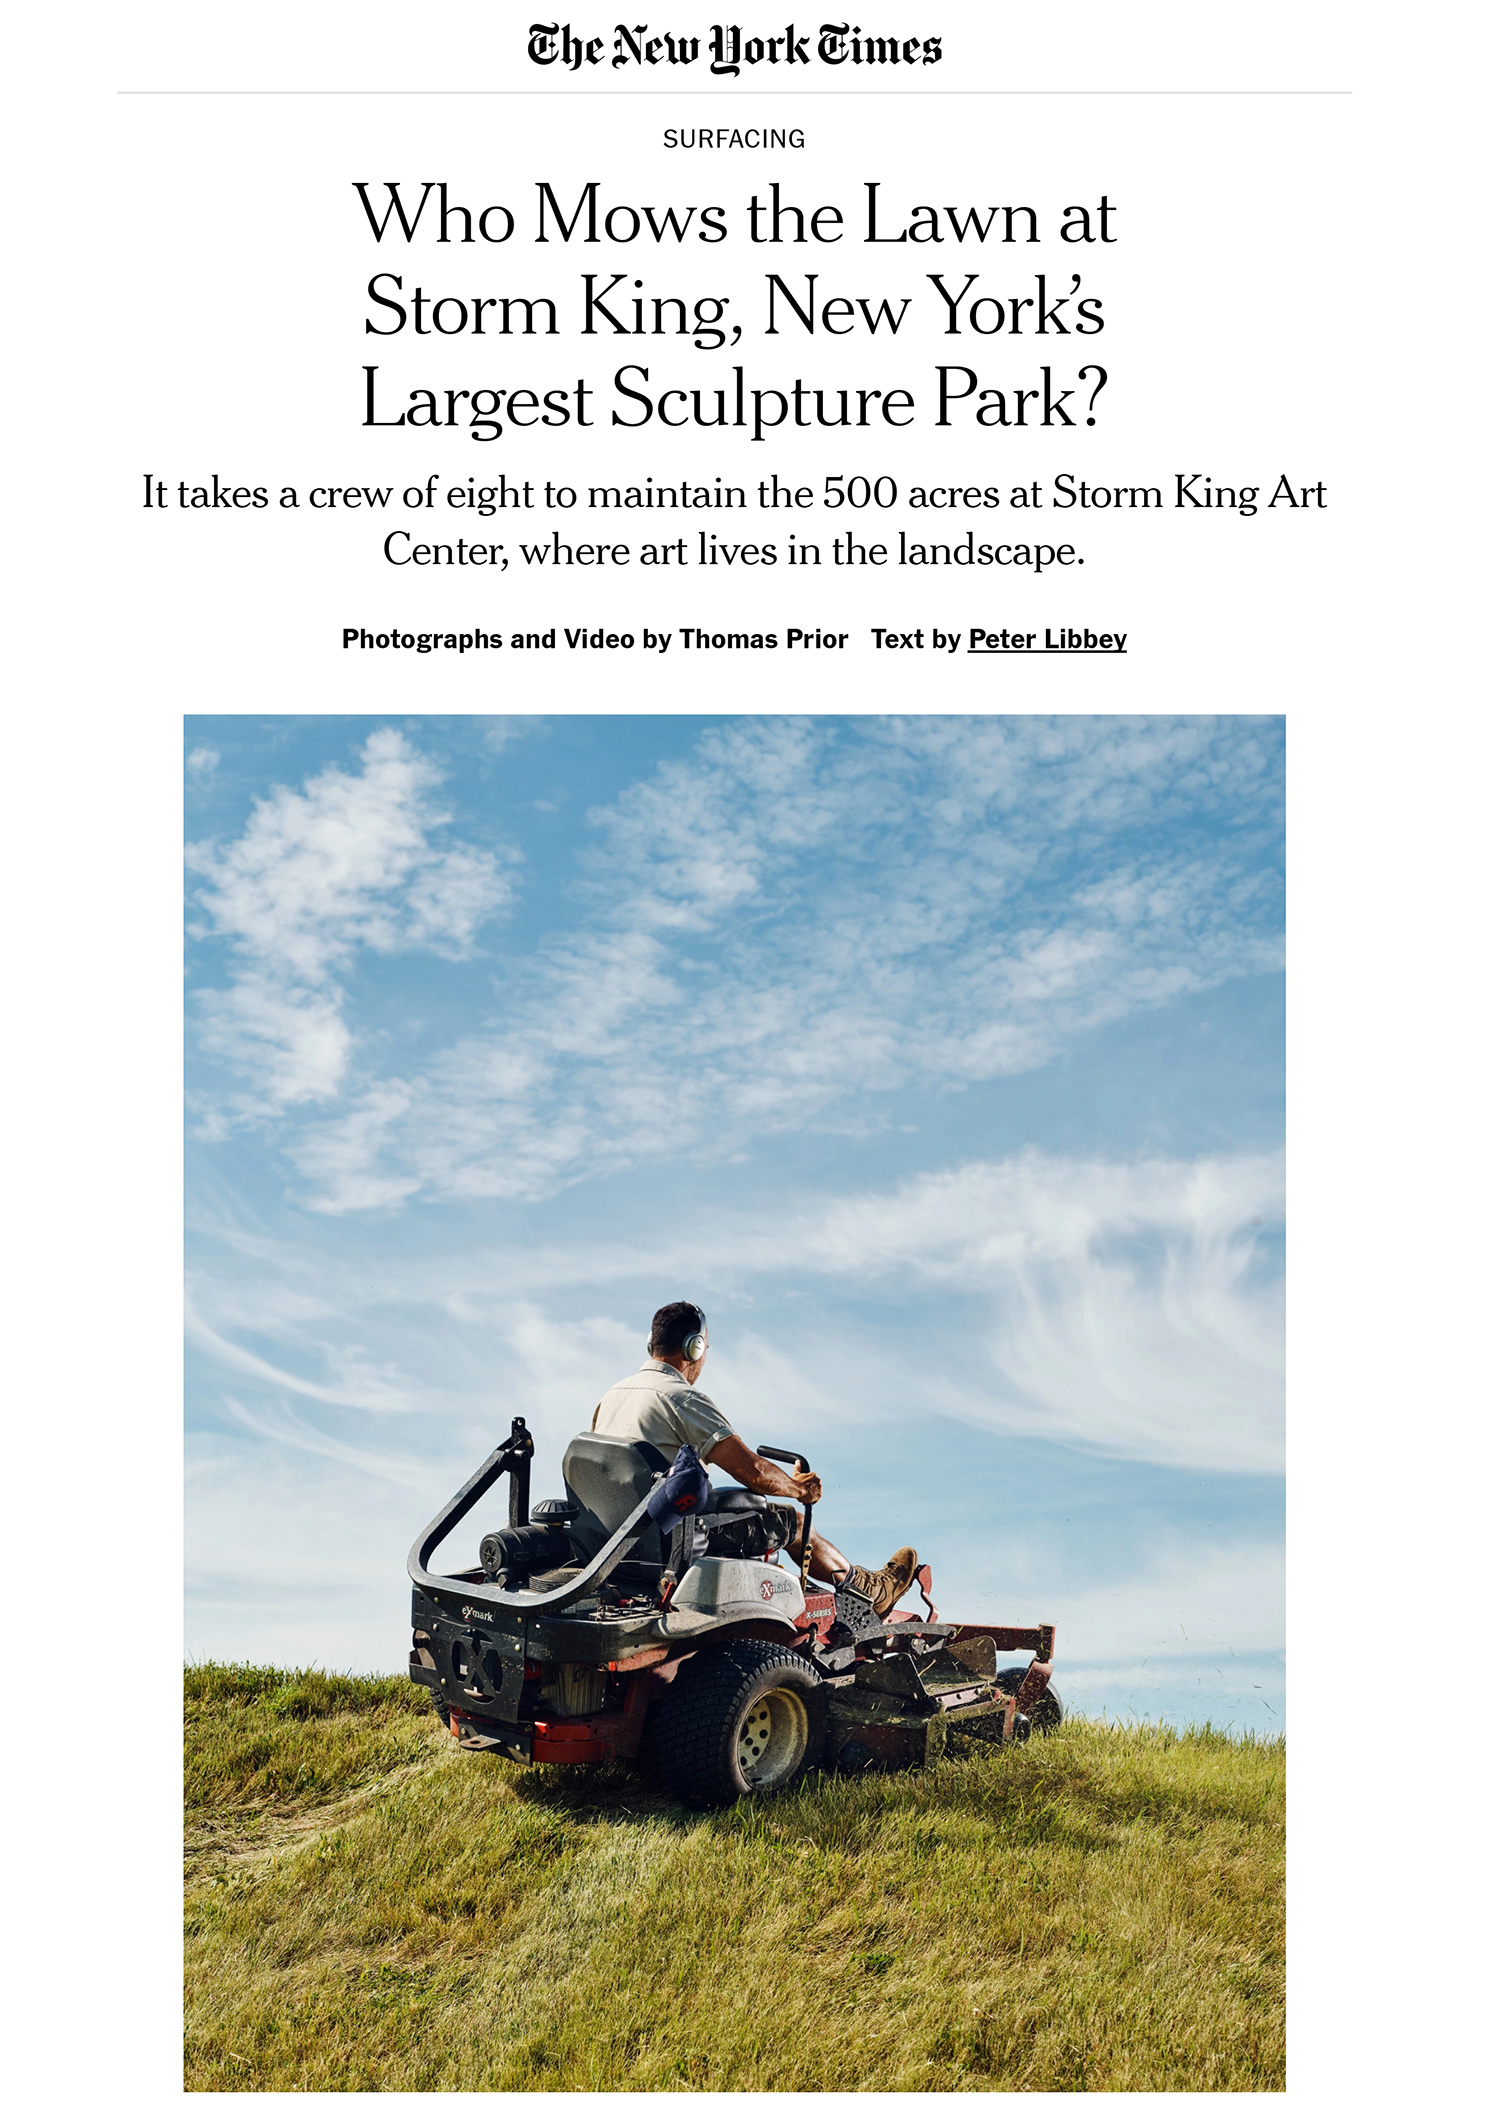 Who Mows the Lawn at Storm King, New York's Largest Sculpture Park.jpg